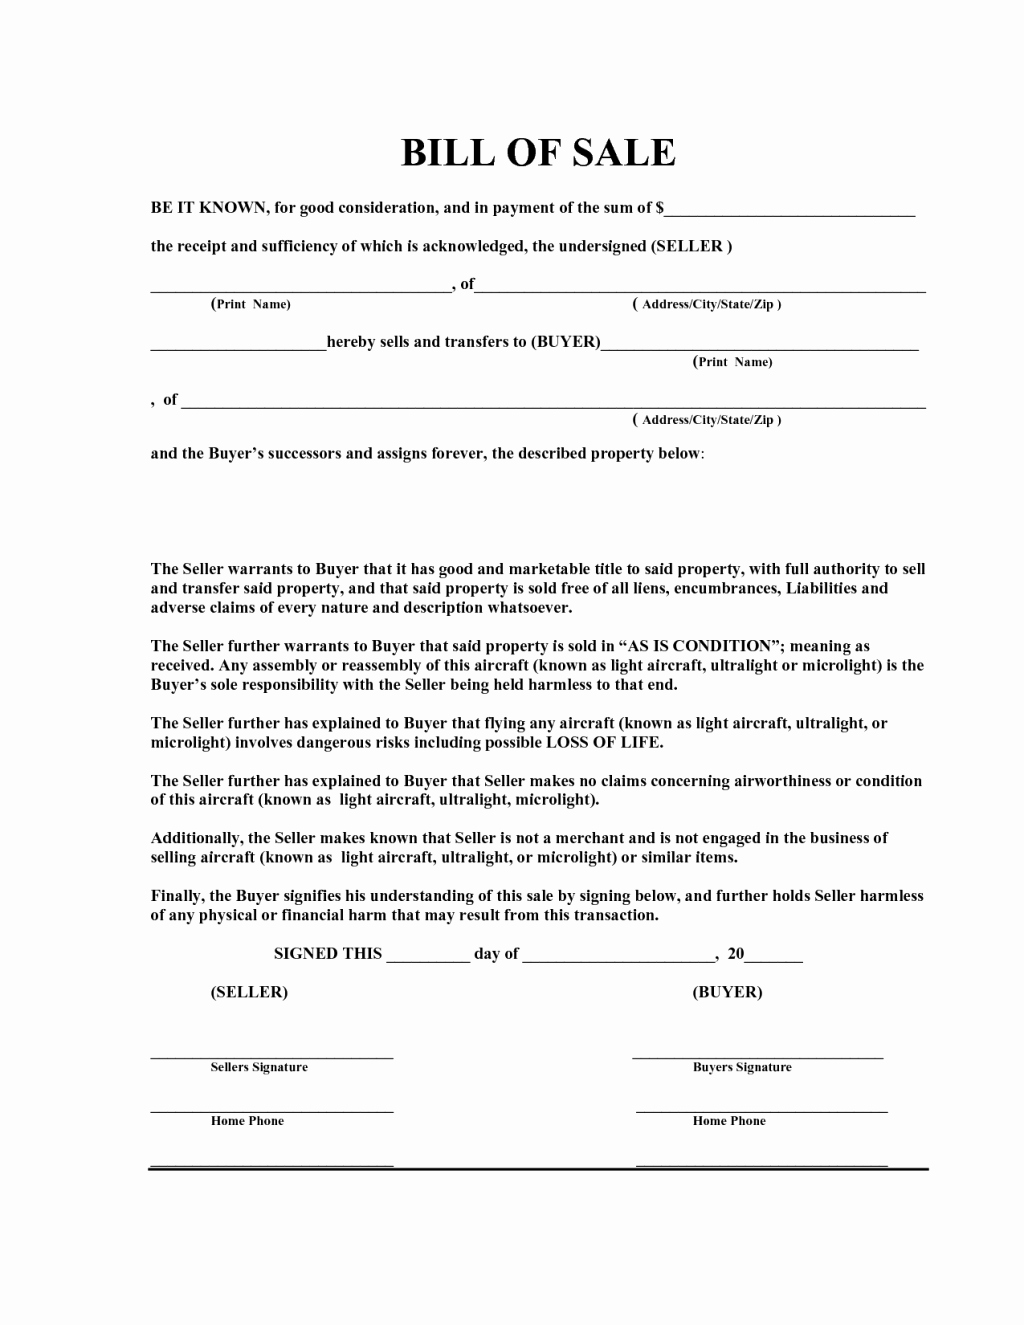 Simple Bill Of Sale Example Elegant Bill Sale for Land Simple Car Anuvratinfo